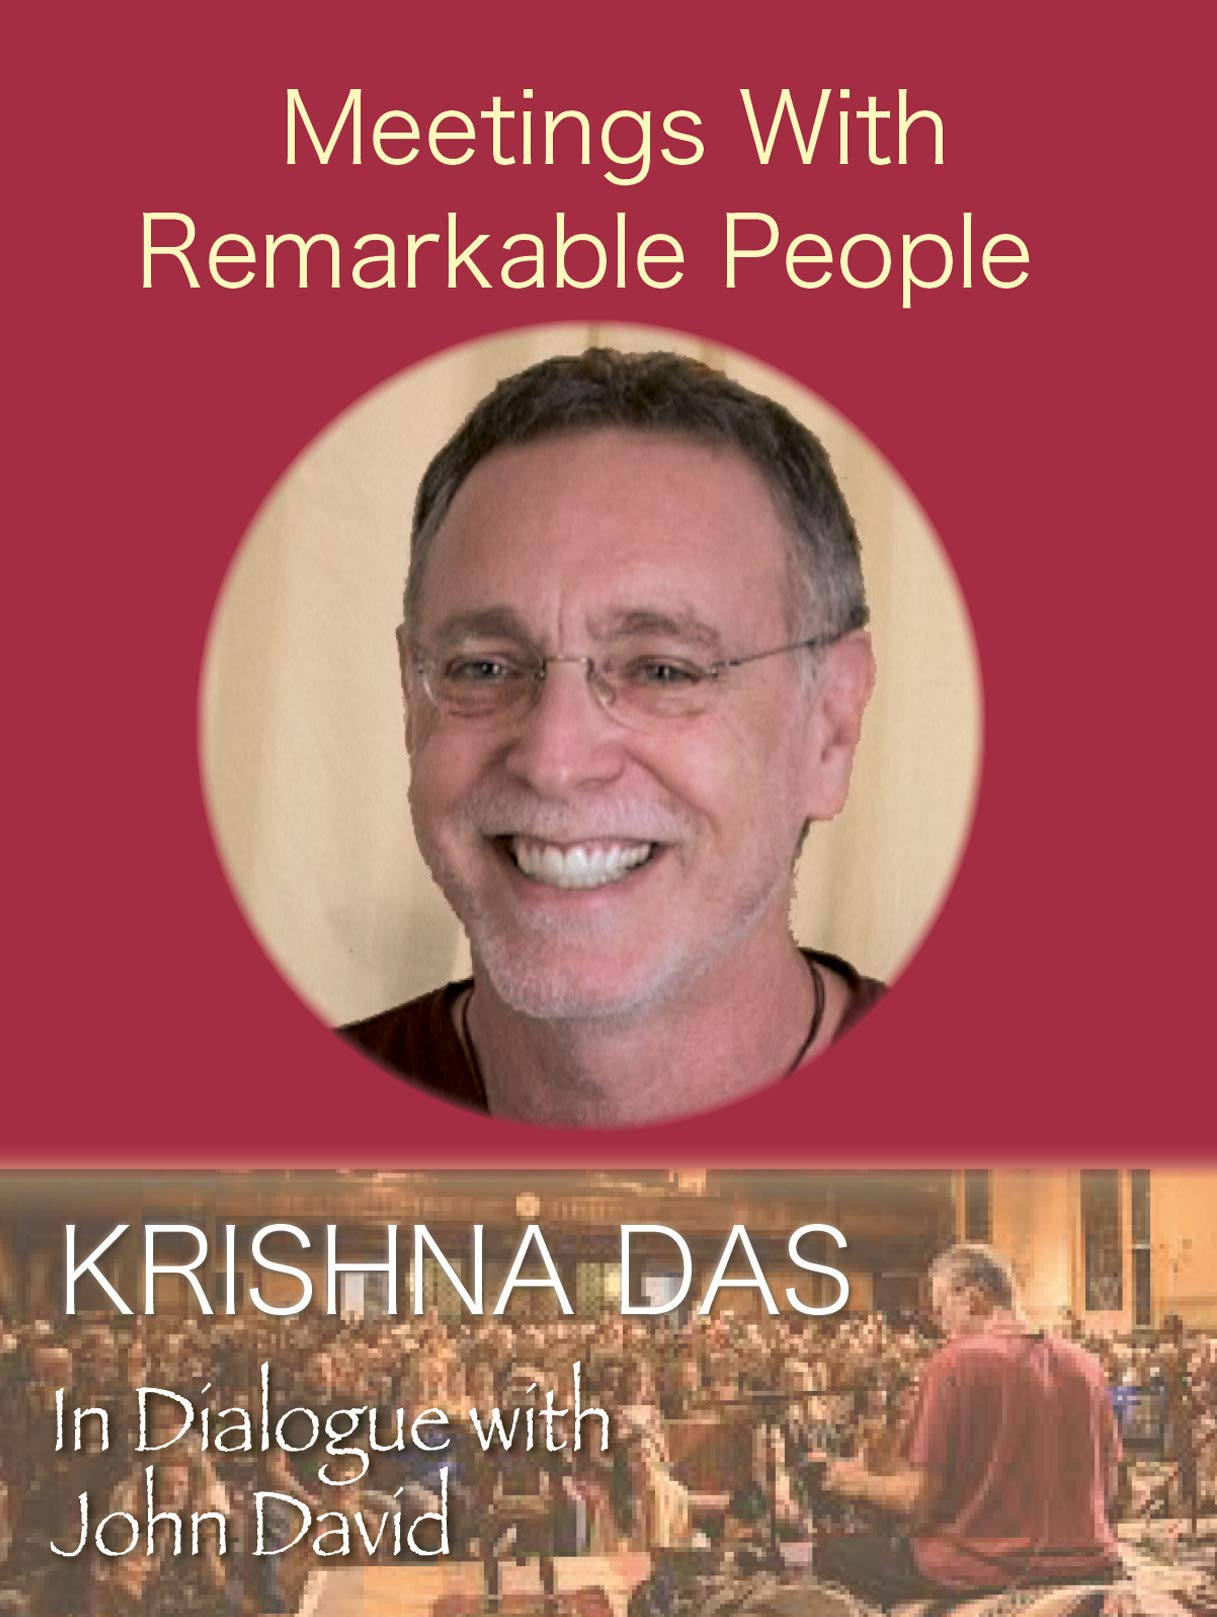 Meeting with Remarkable People - Krishna Das on Amazon Prime Video UK